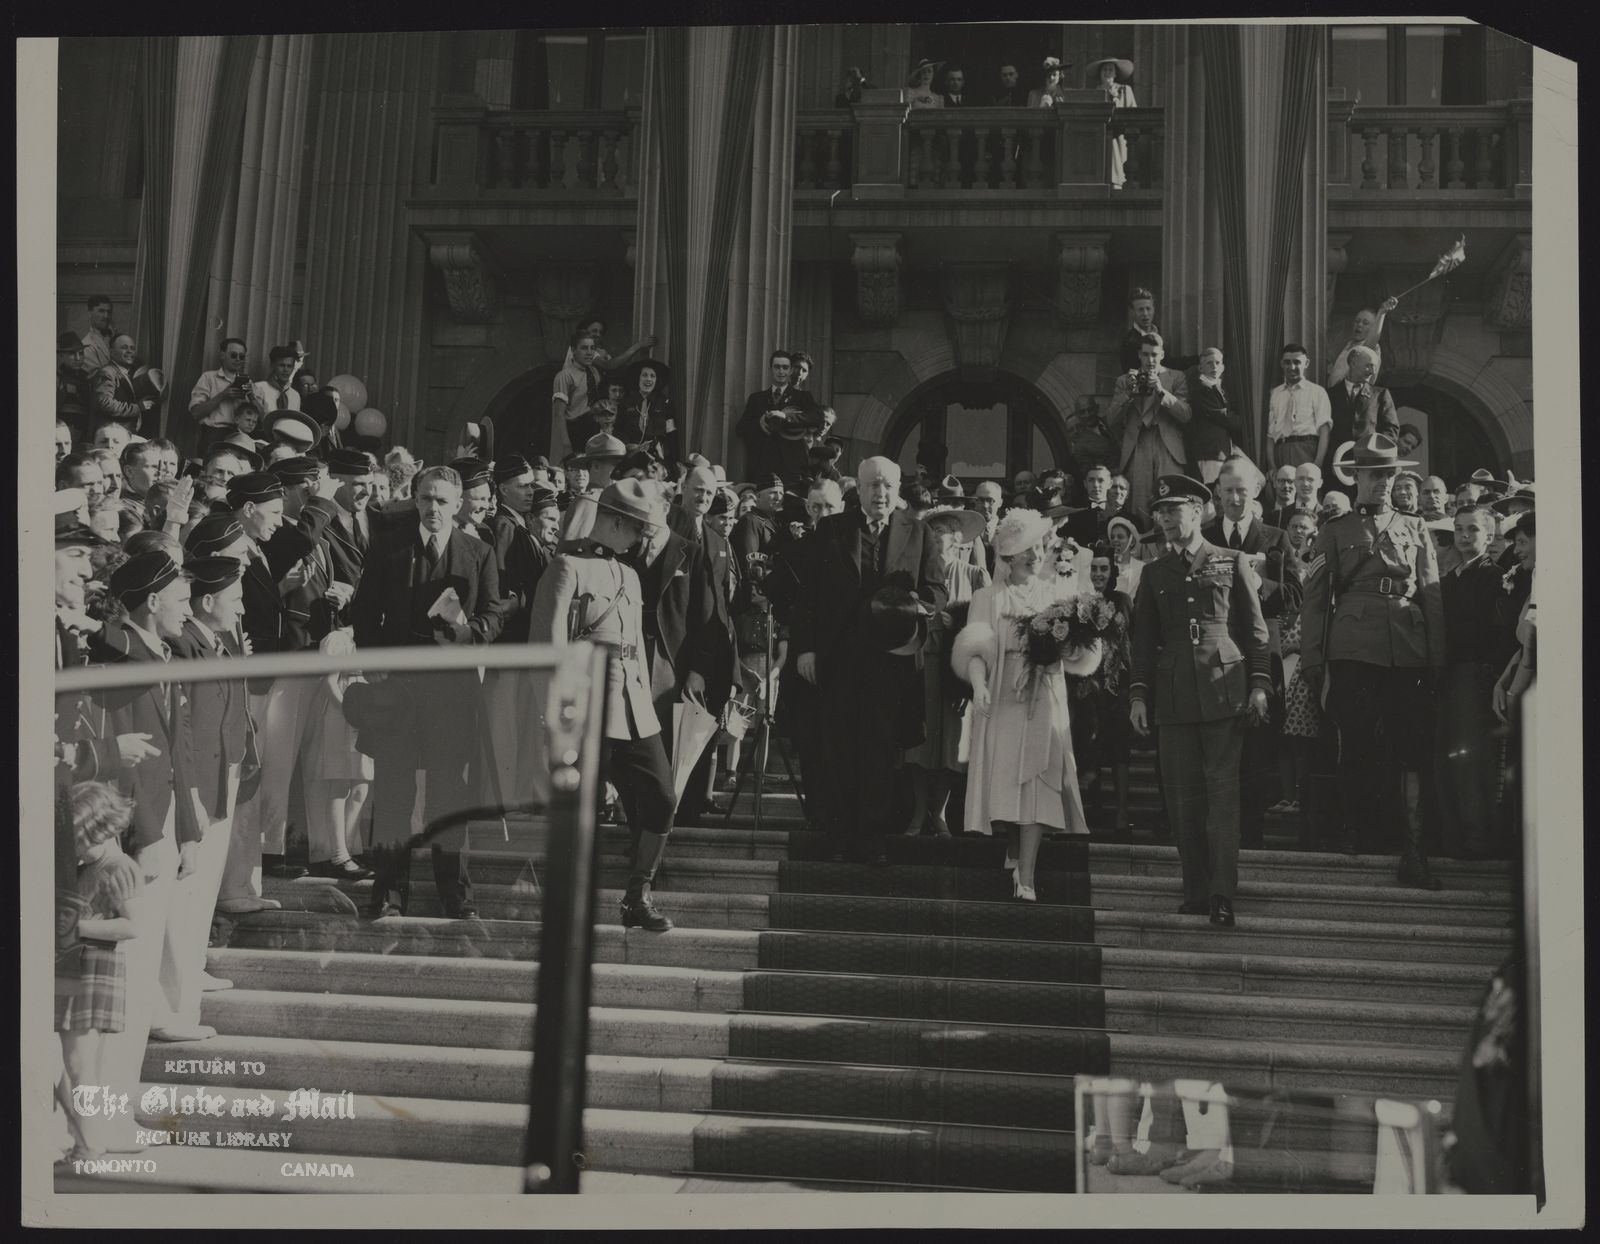 ROYAL FAMILY GREAT BRITAIN KING GEORGE VI QUEEN ELIZABETH VISIT TO CANADA, 1939. KING AND QUEEN LEAVE HOUSE OF PARLIAMENT. EDMONTON, ALTA. CANADA -- PREMIER WILLIAM ABERHART OF EDMONTON (LEFT) IS SHOWN WITH KING GEORGE VI AND QUEEN ELEZABETH OF ENGLAND AS THEY LEFT THE PARLIAMENT BUILDING DURING THE VISIT OF THE ENGLISH RULERS HERE JUNE 2ND, [1939]. THEIR MAJESTIES WERE WELCOMED HERE BY A CROWD OF 90,000 PERSONS WHO TURNED OUT TO SHOW THEIR FEALTY TO THE KING AND QUEEN.